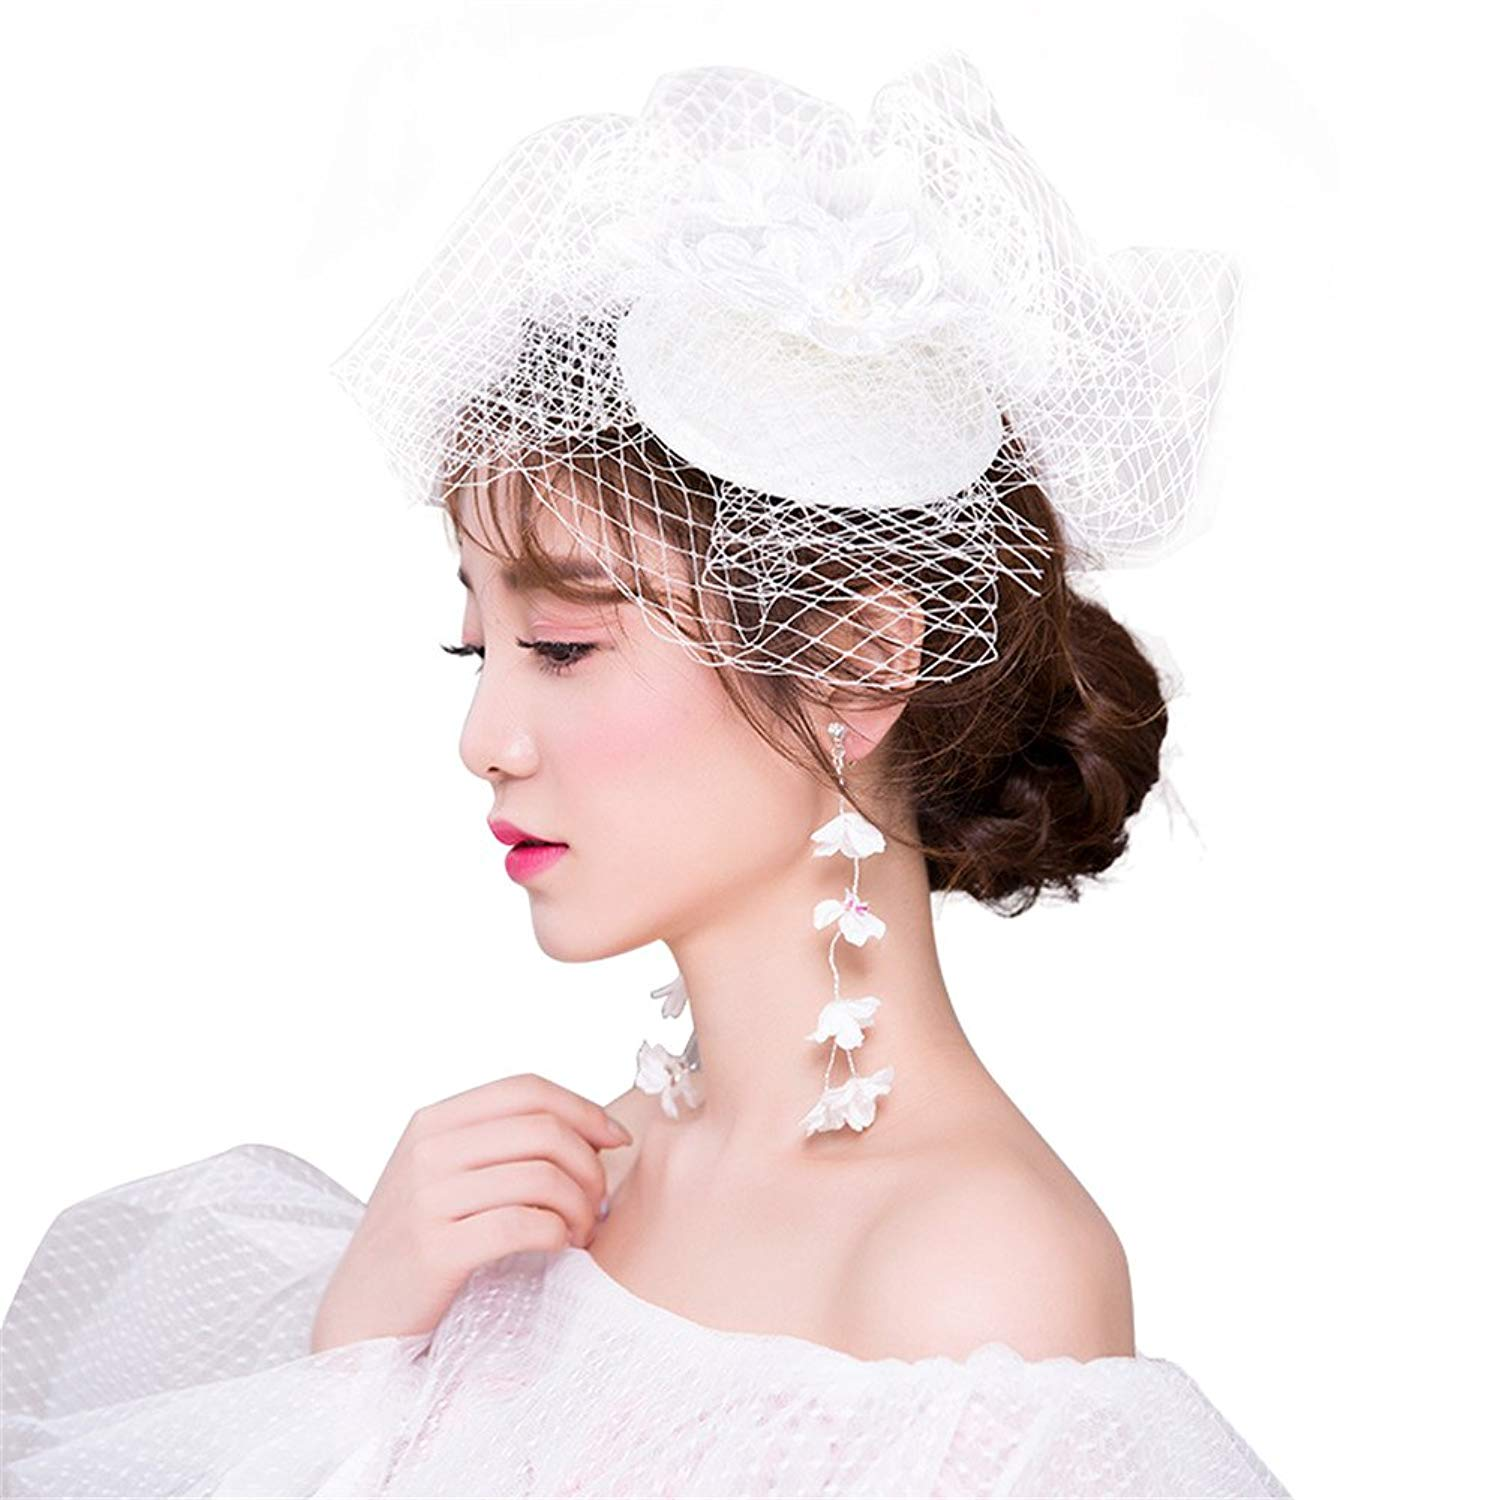 Cheap Lady Veil, find Lady Veil deals on line at Alibaba.com